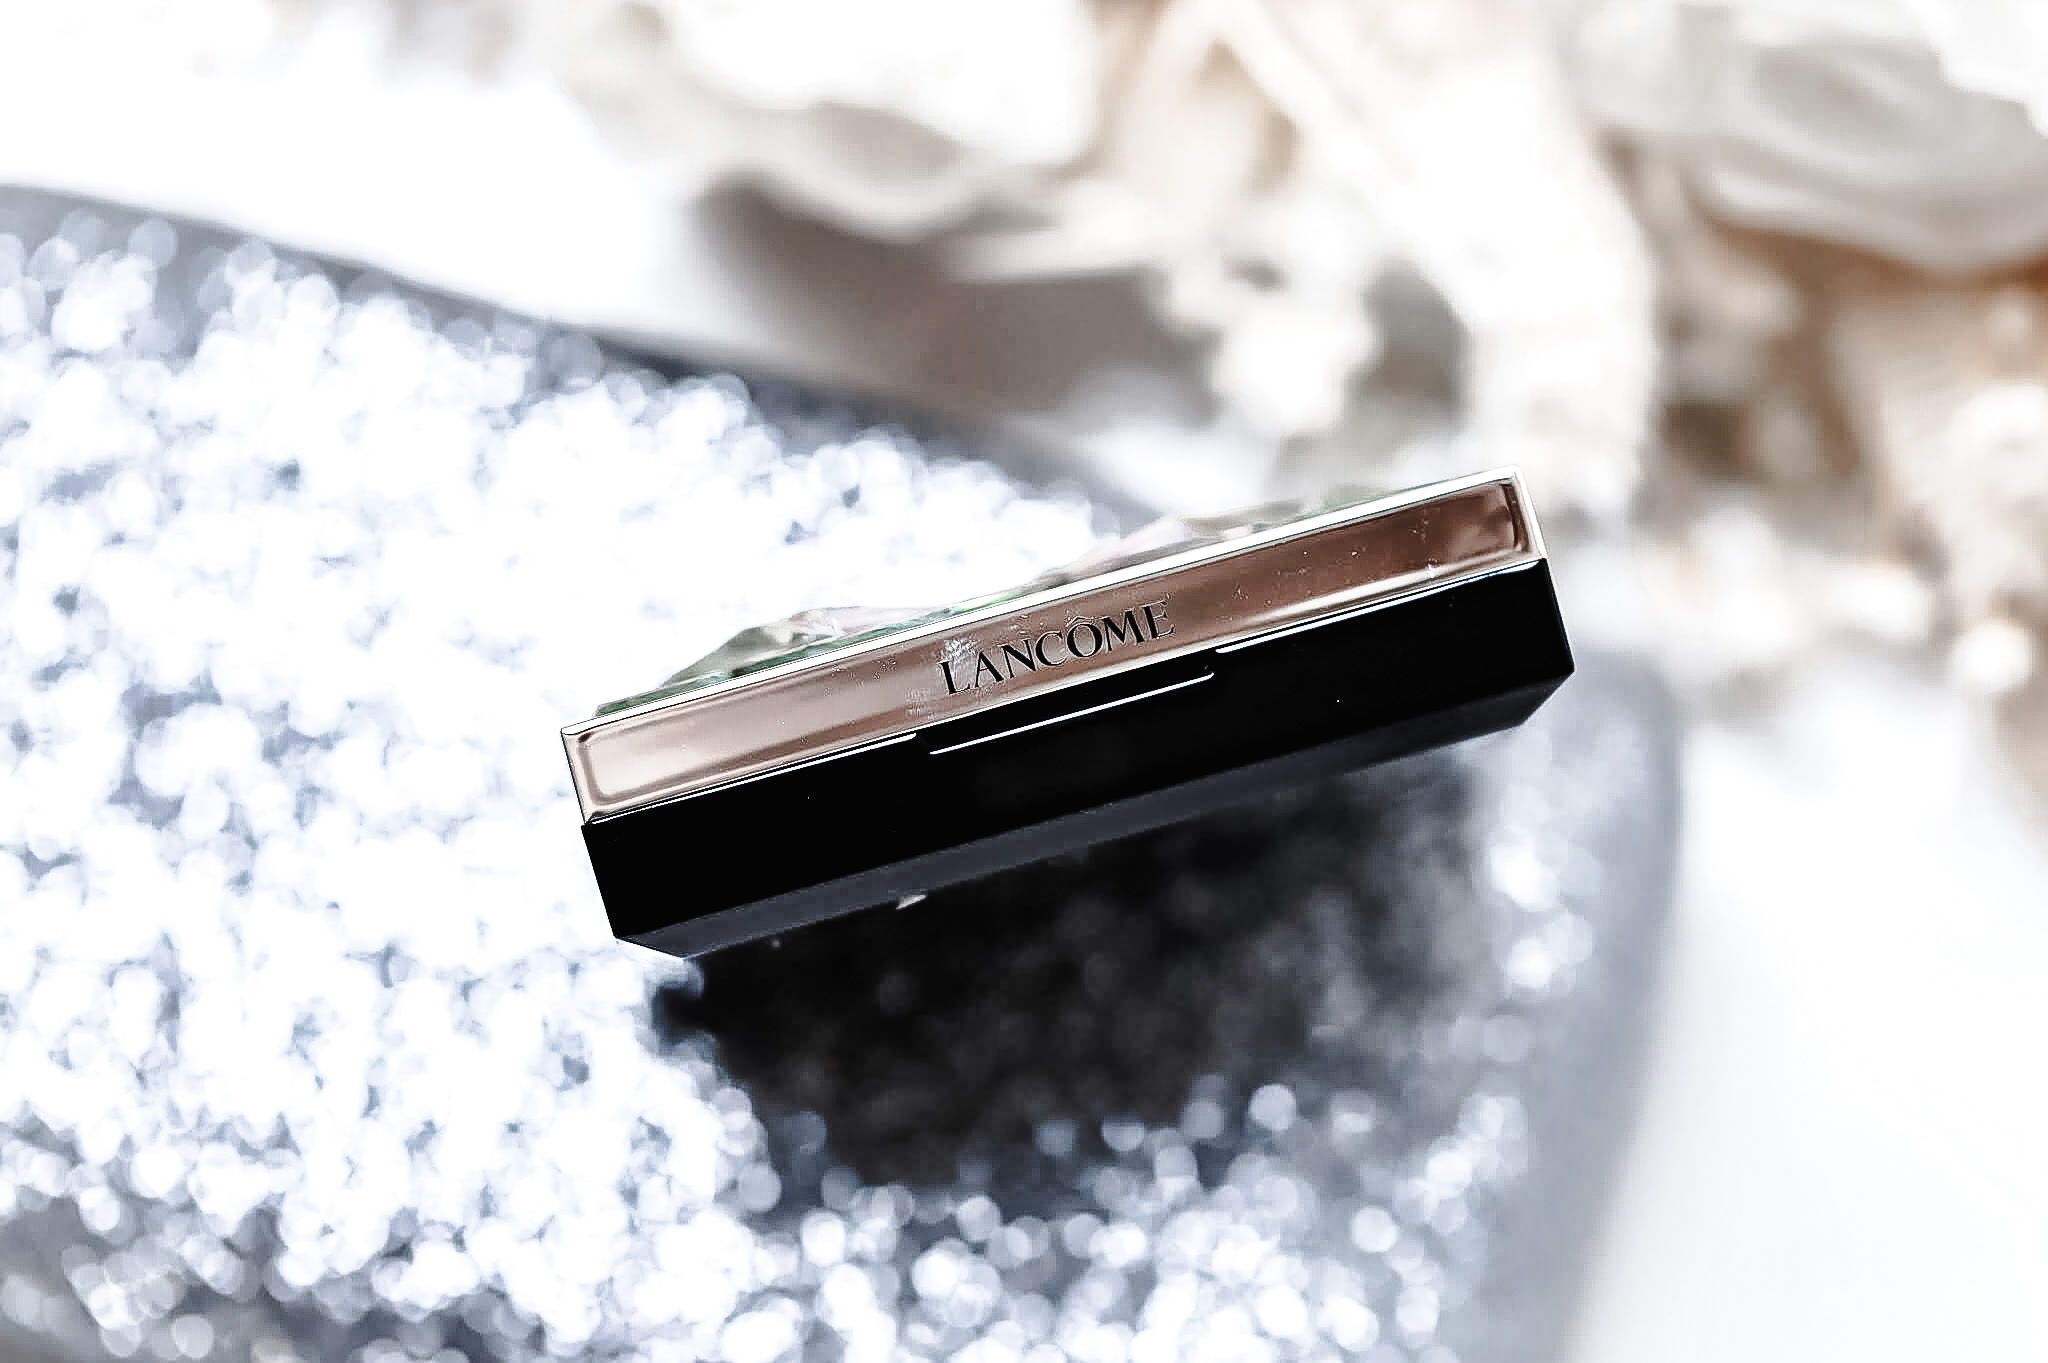 Lancome La Rose Highlighter Precious Holiday 2020 Crystal Holographic